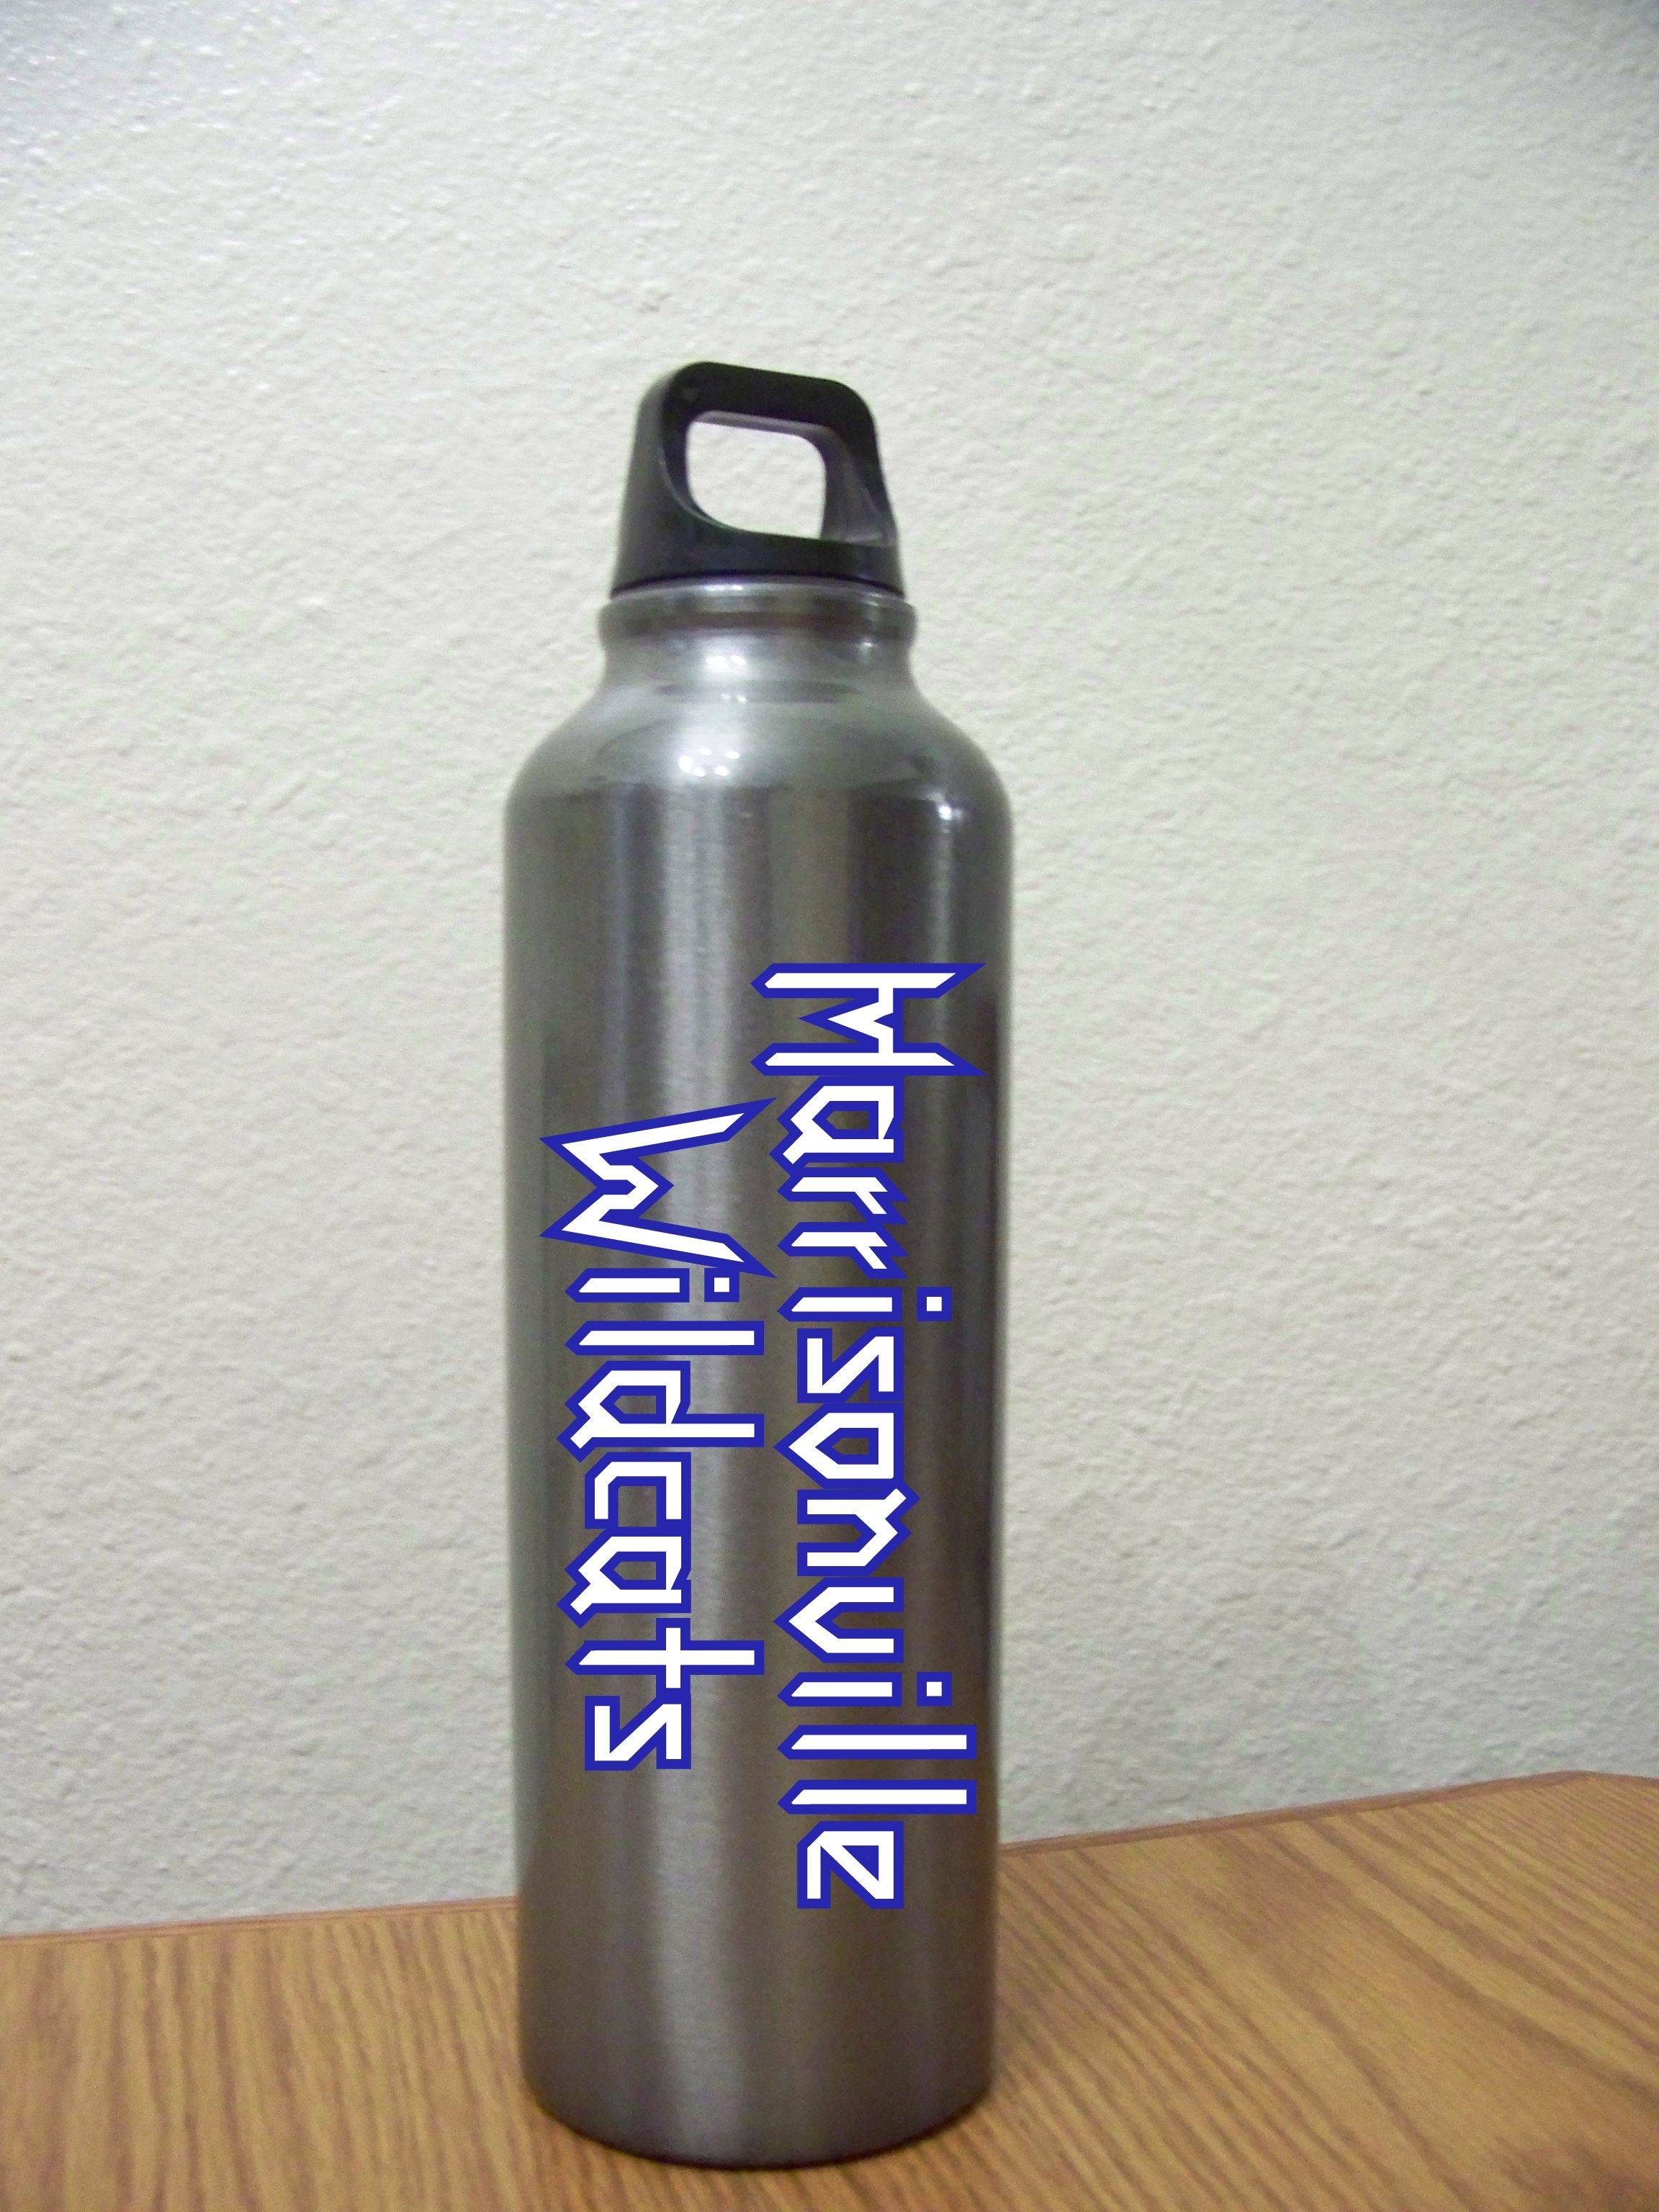 Customized/Personalized reusable water bottle